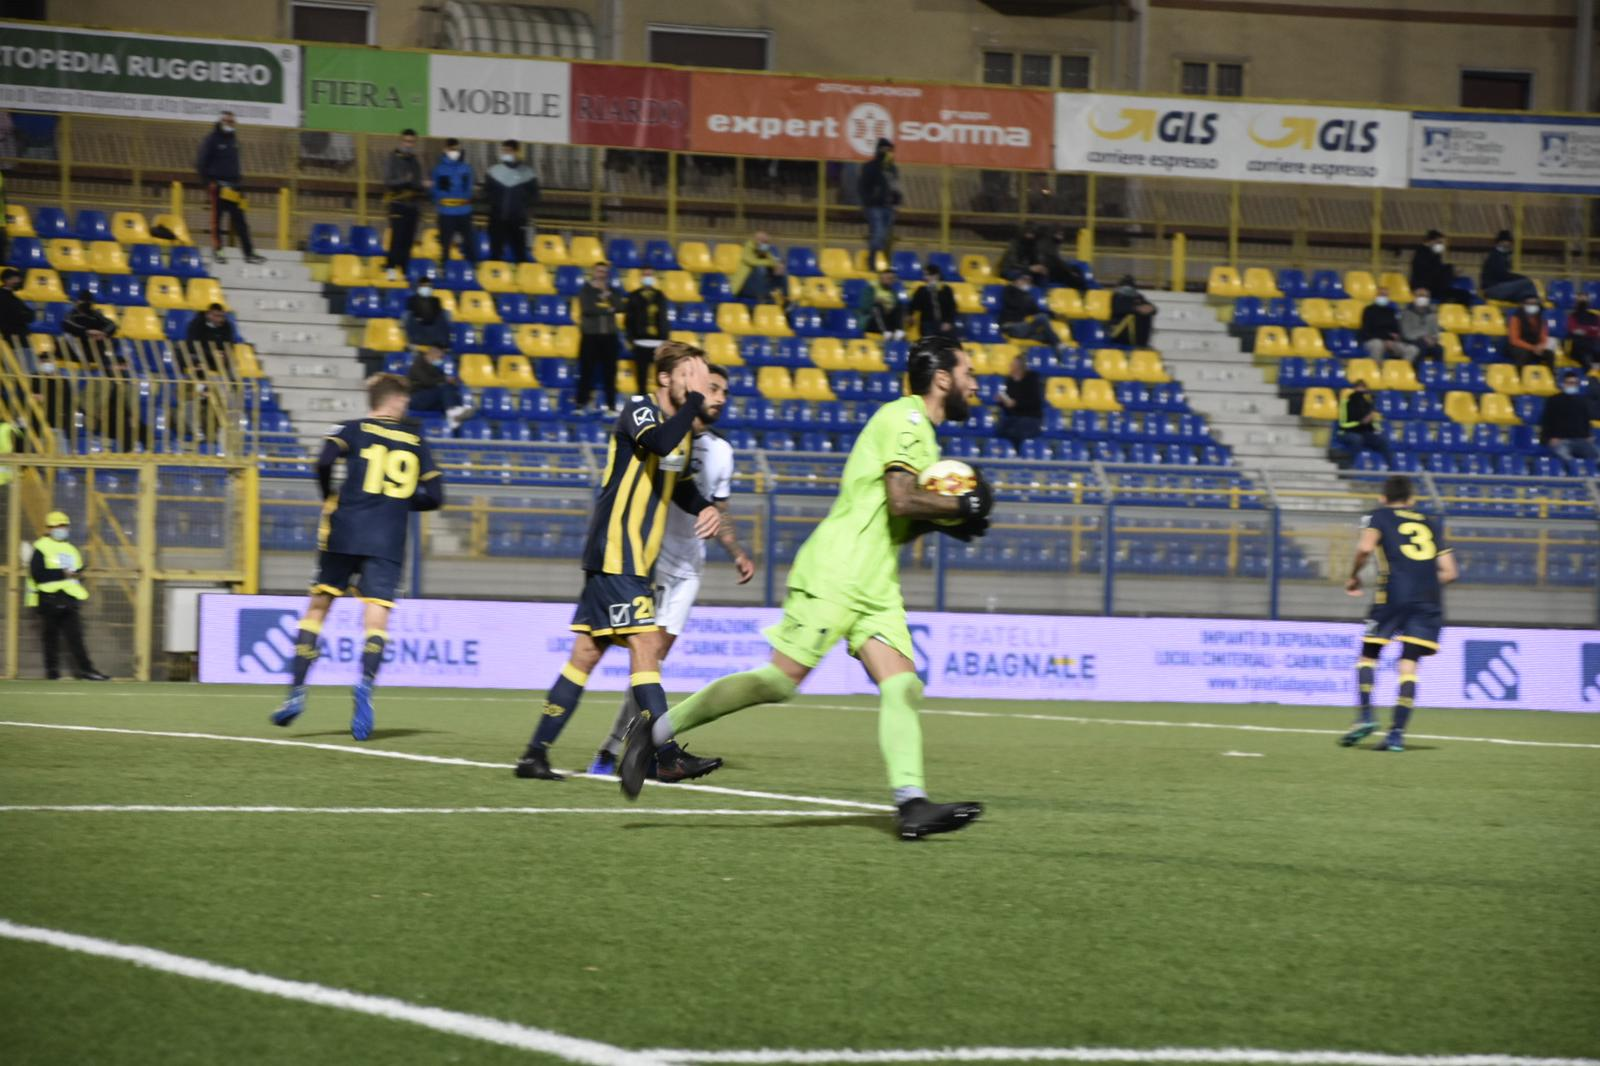 juve stabia tomei